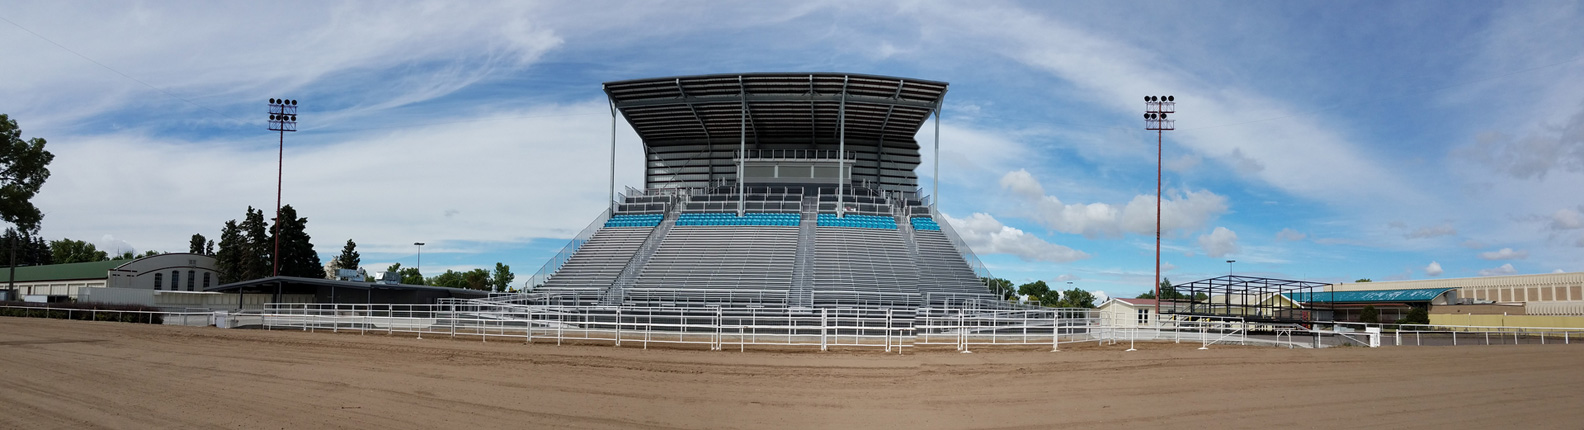 2019_grandstand_pano